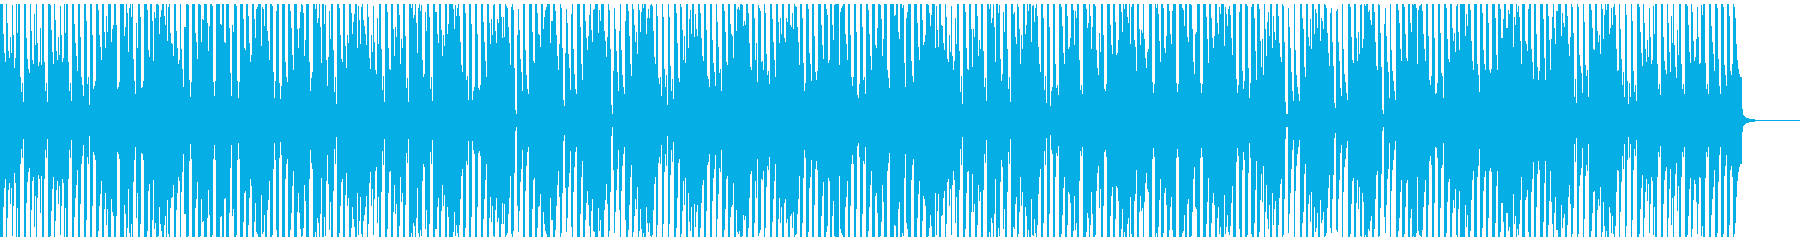 Comical and fun BGM of ukulele and whistling's reproduced waveform